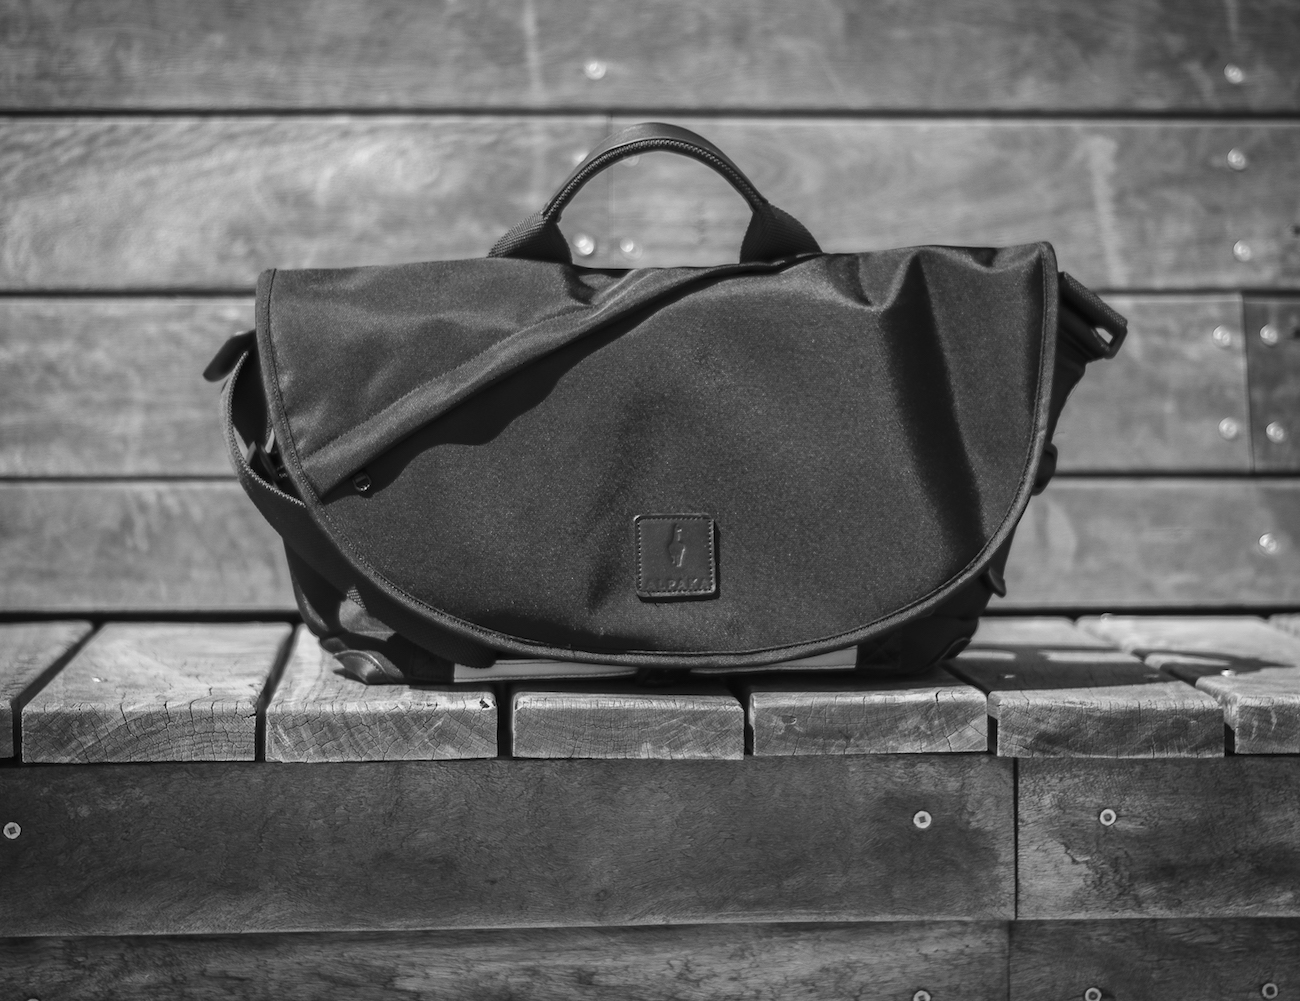 7ven Messenger – The Only Bag You Need